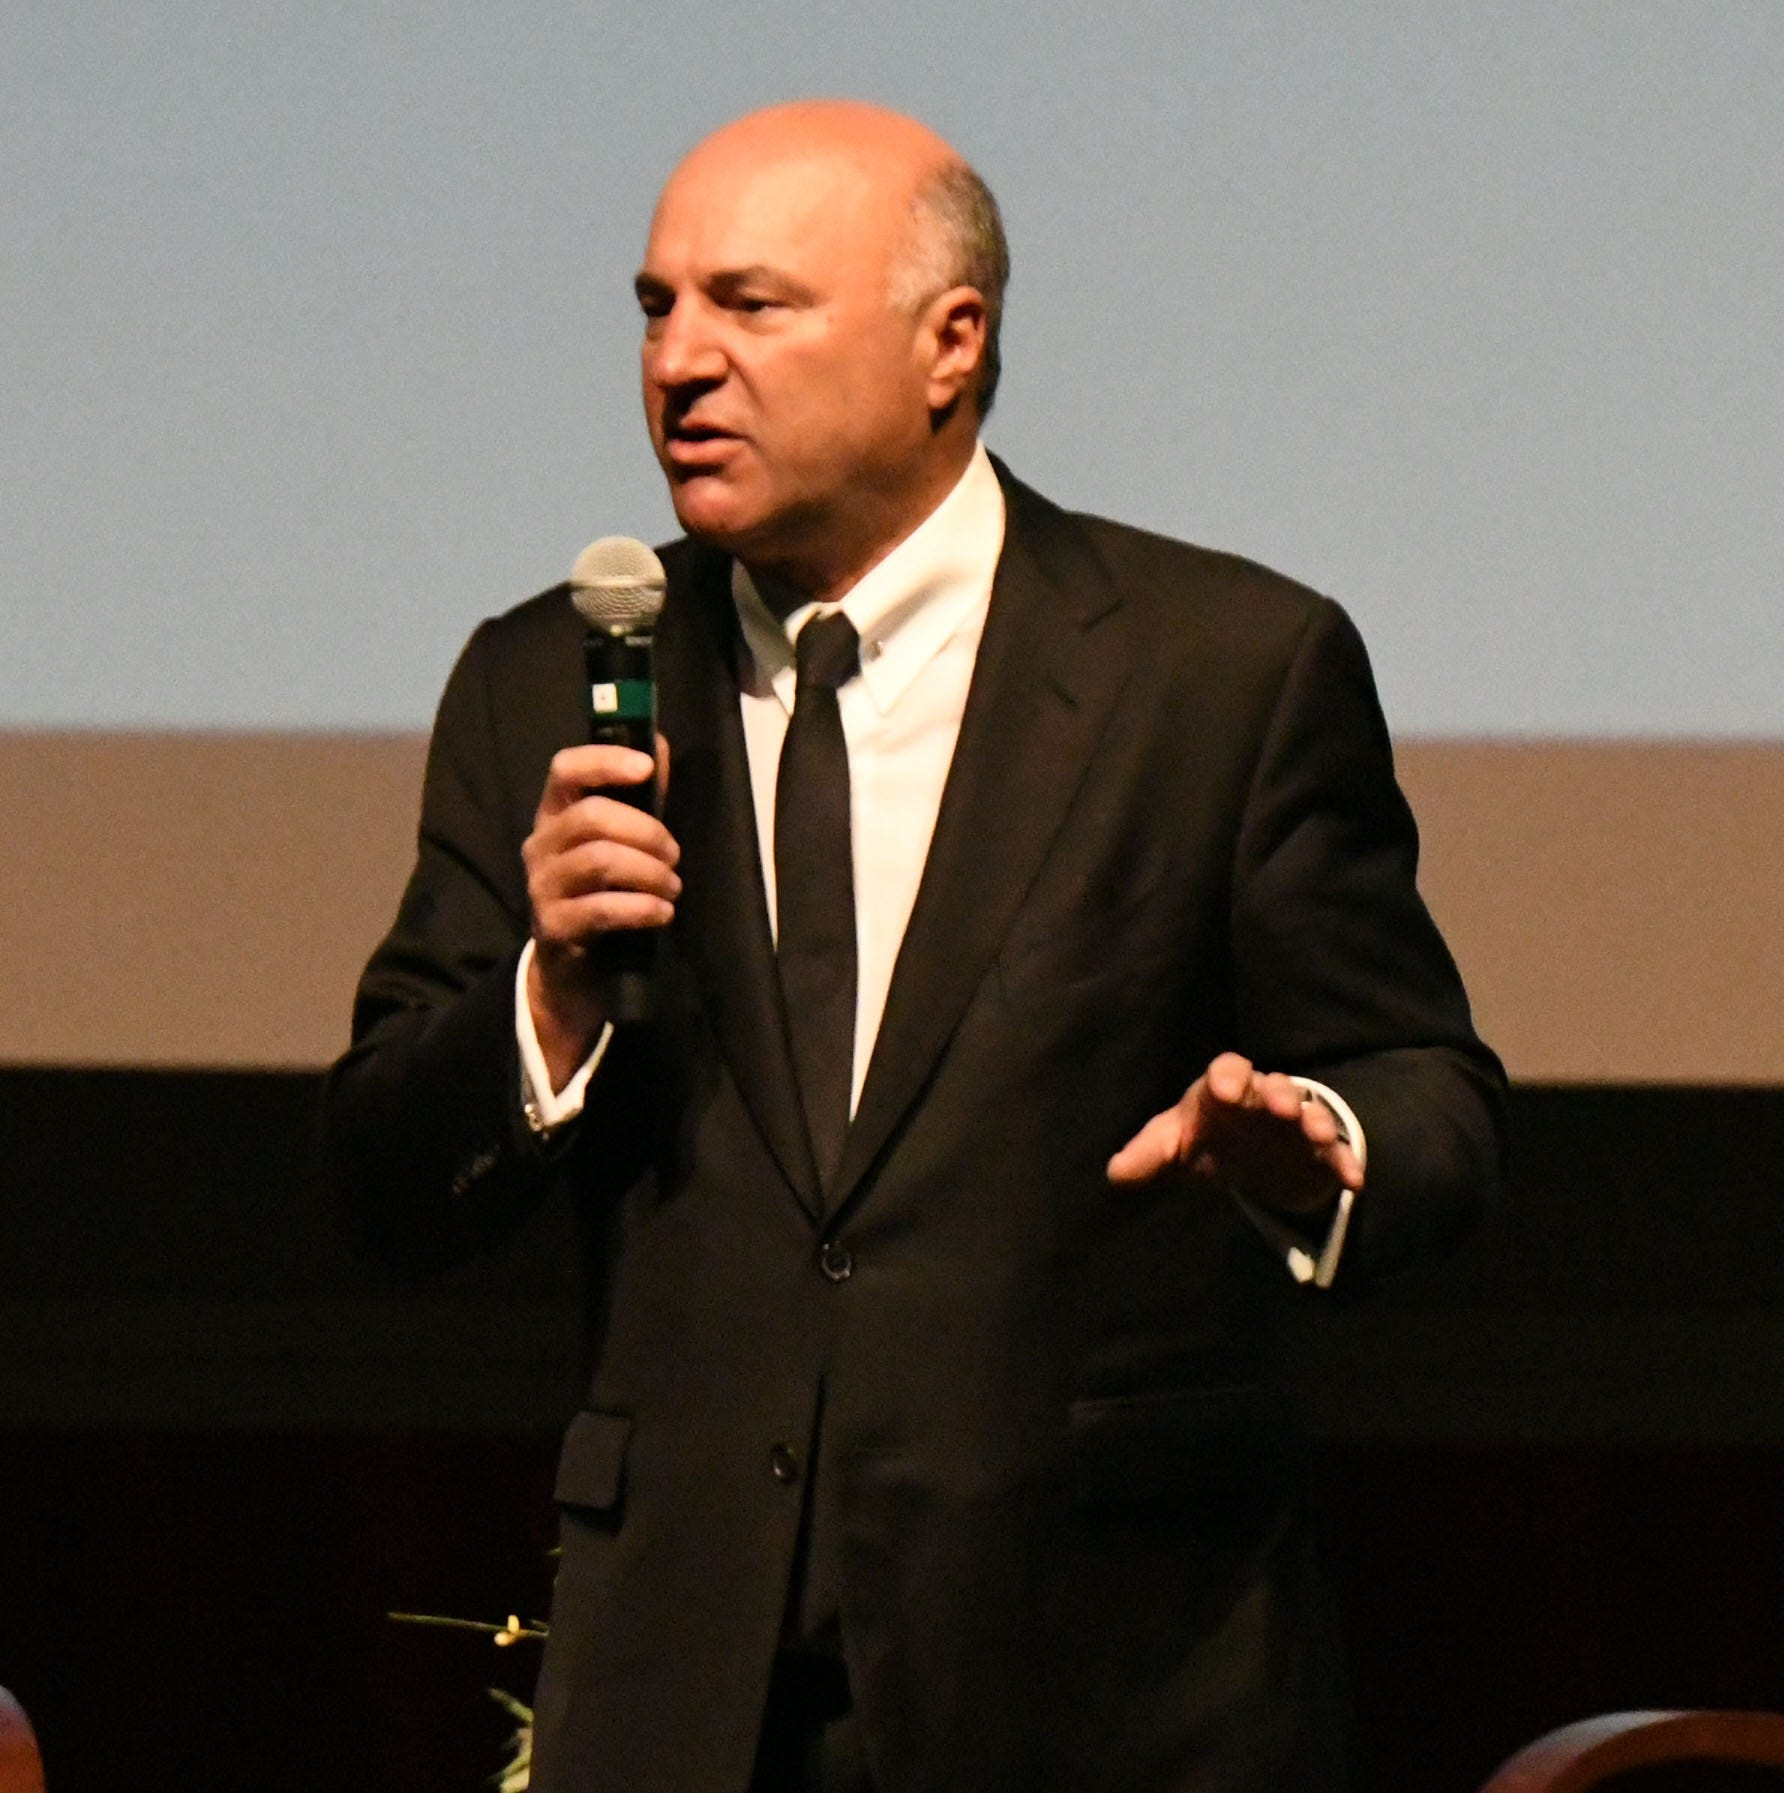 Kevin O'Leary's takeaways for young entrepreneurs